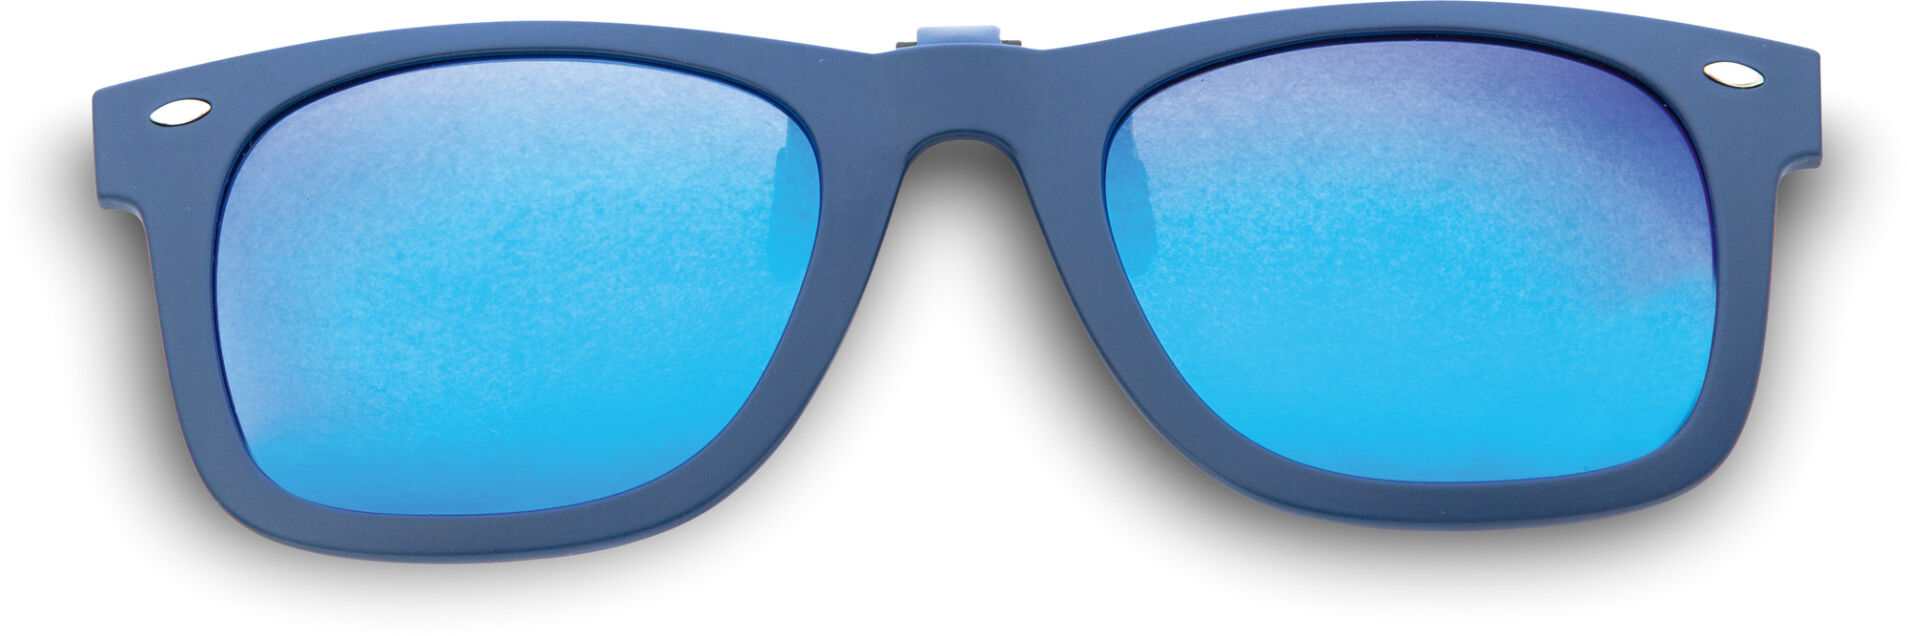 WayCool Jr. Flip-Ups Blue/Blue Mirror Polarized